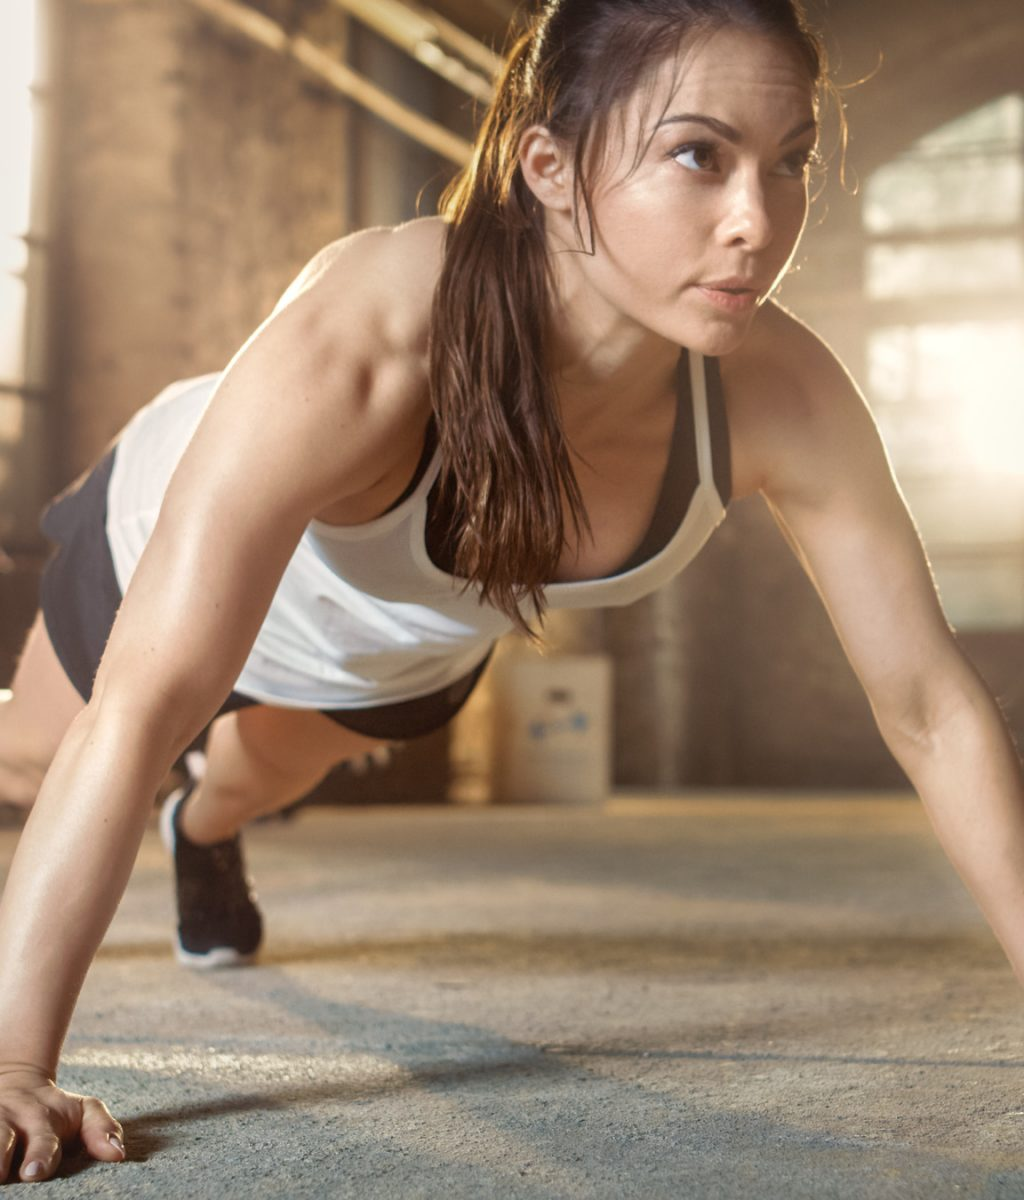 Athletic Beautiful Woman Does Push-ups as Part of Her Cross Fitness, Bodybuilding Gym Training Routine.